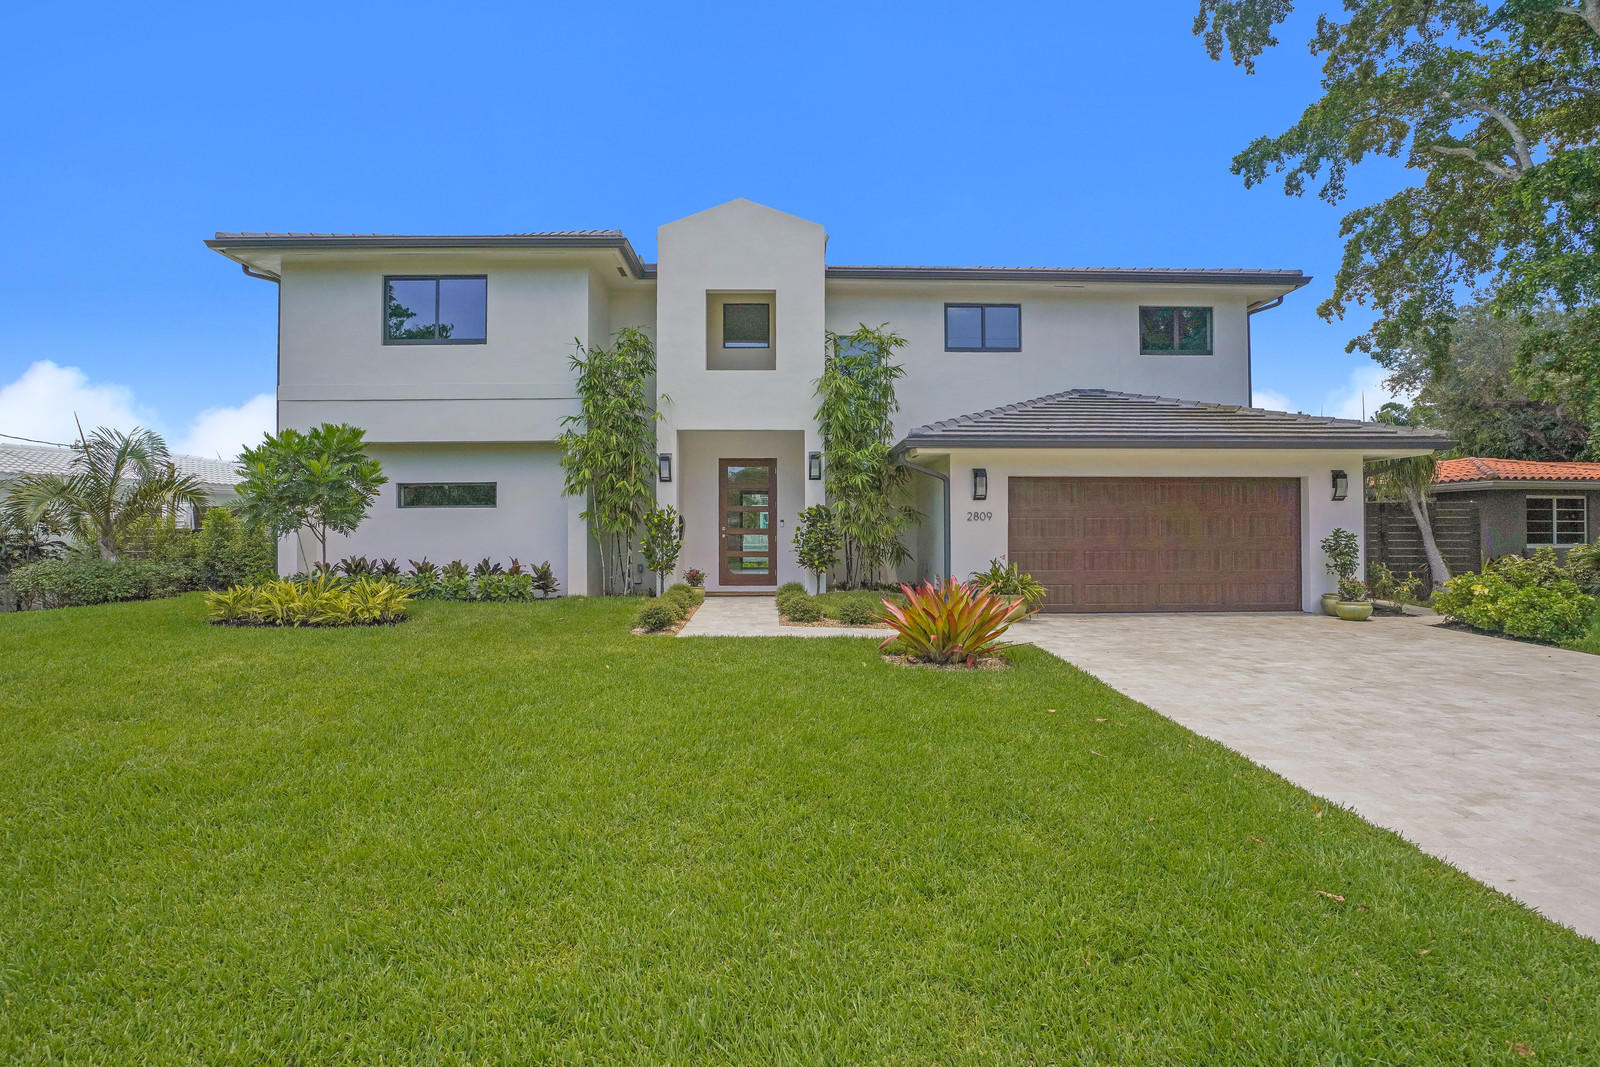 Photo of 2809 NE 14 Avenue, Wilton Manors, FL 33334